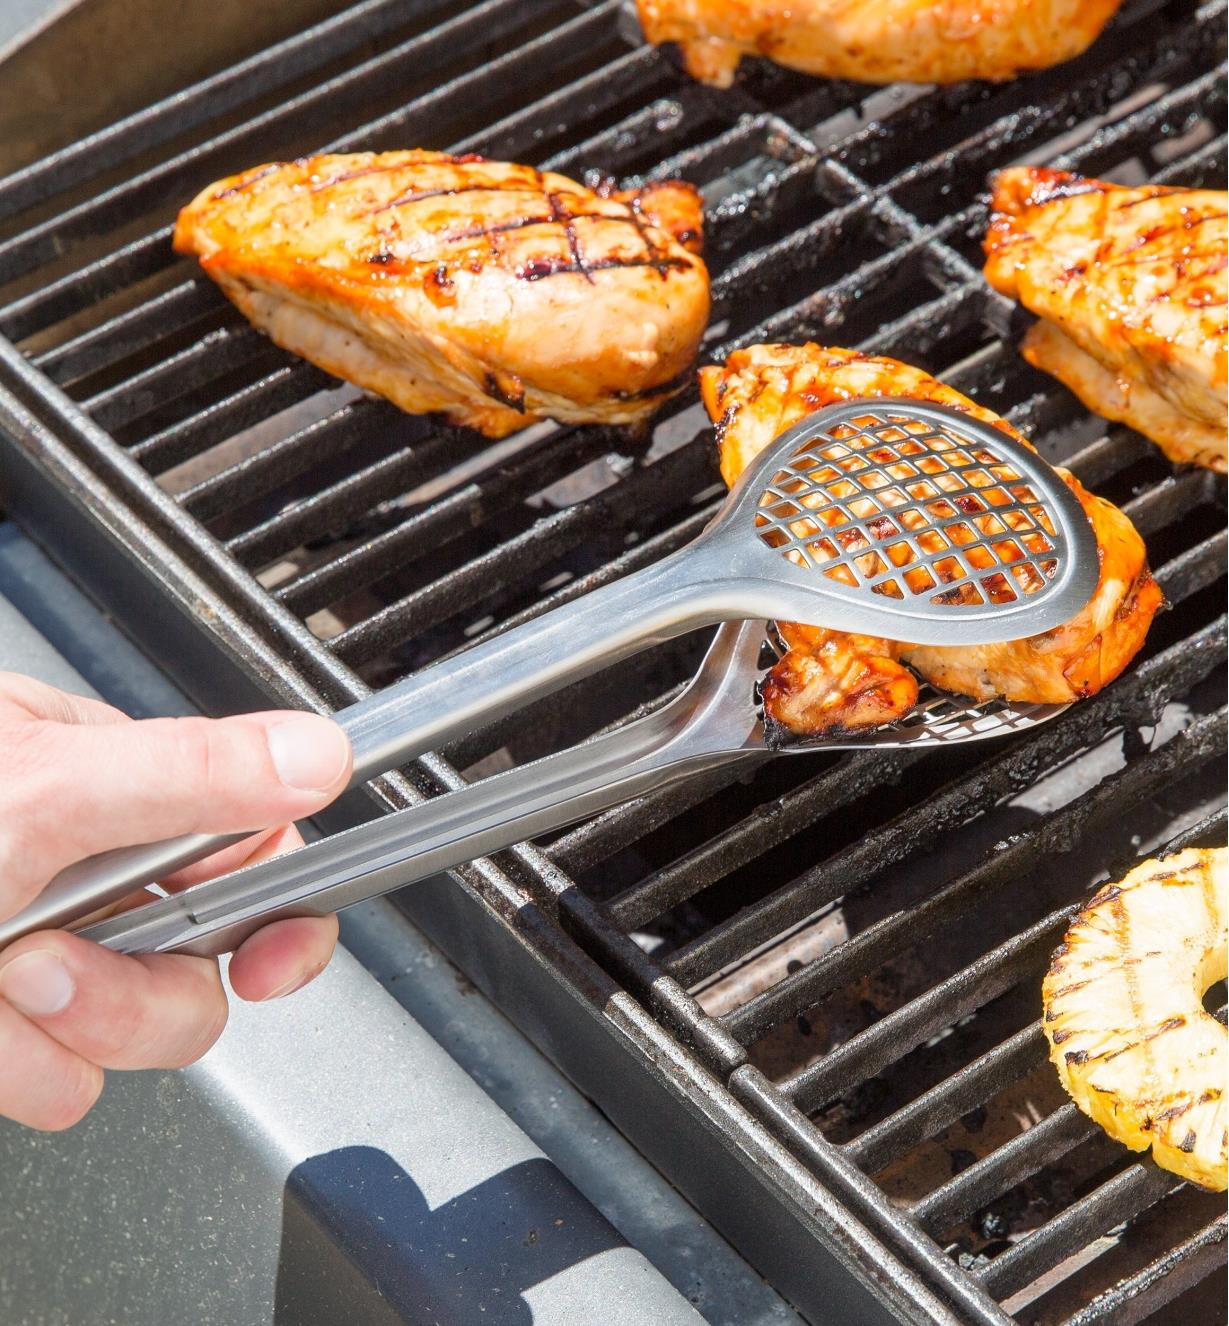 Using Grill Fry Tongs to pick up a chicken breast on a barbecue